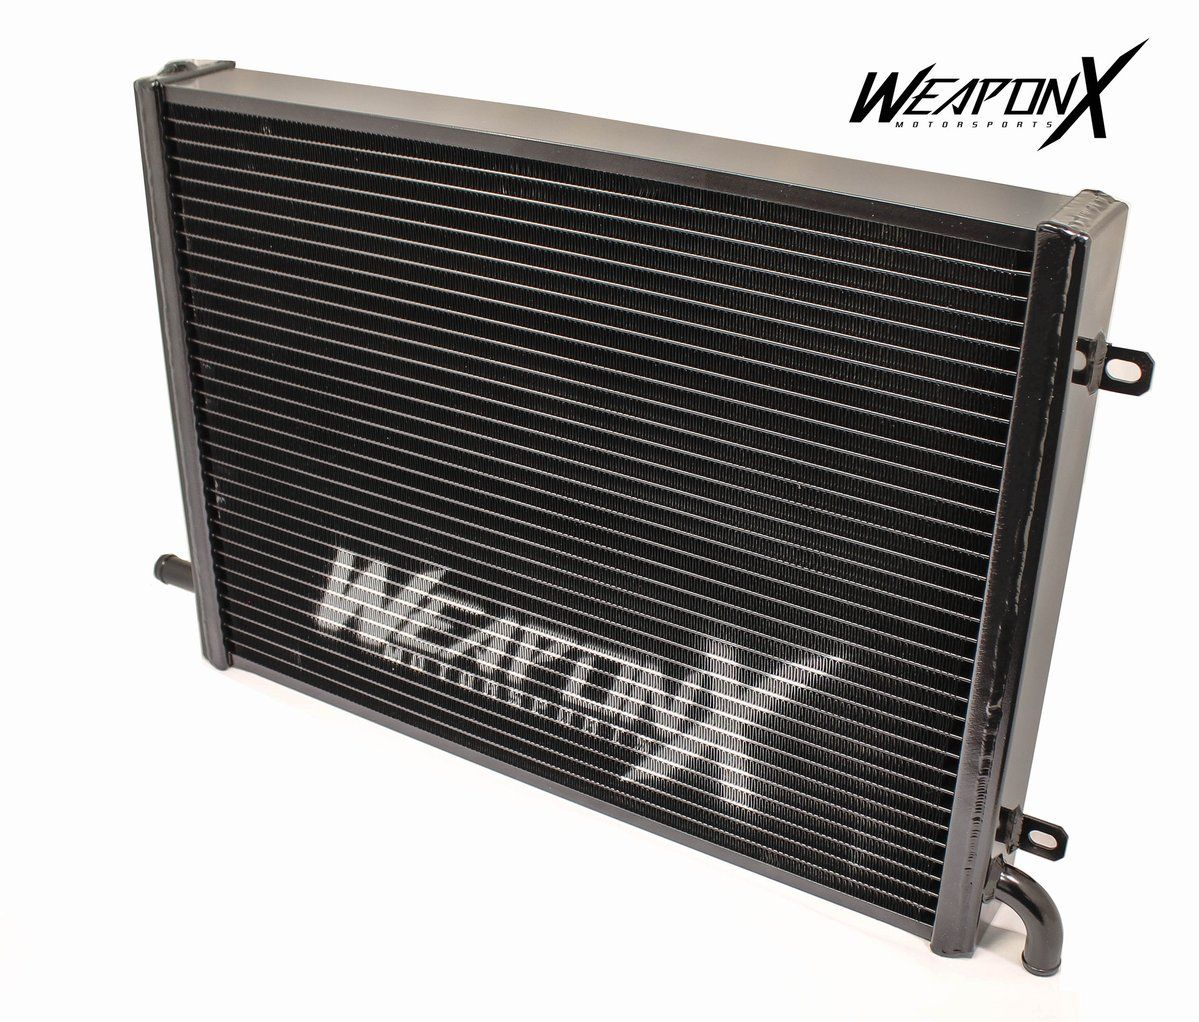 2015 Cadillac Cts V Hpe700 Engine Upgrade: WEAPON-X: Track Attack Heat Exchanger [CTS V Gen 2, LSA